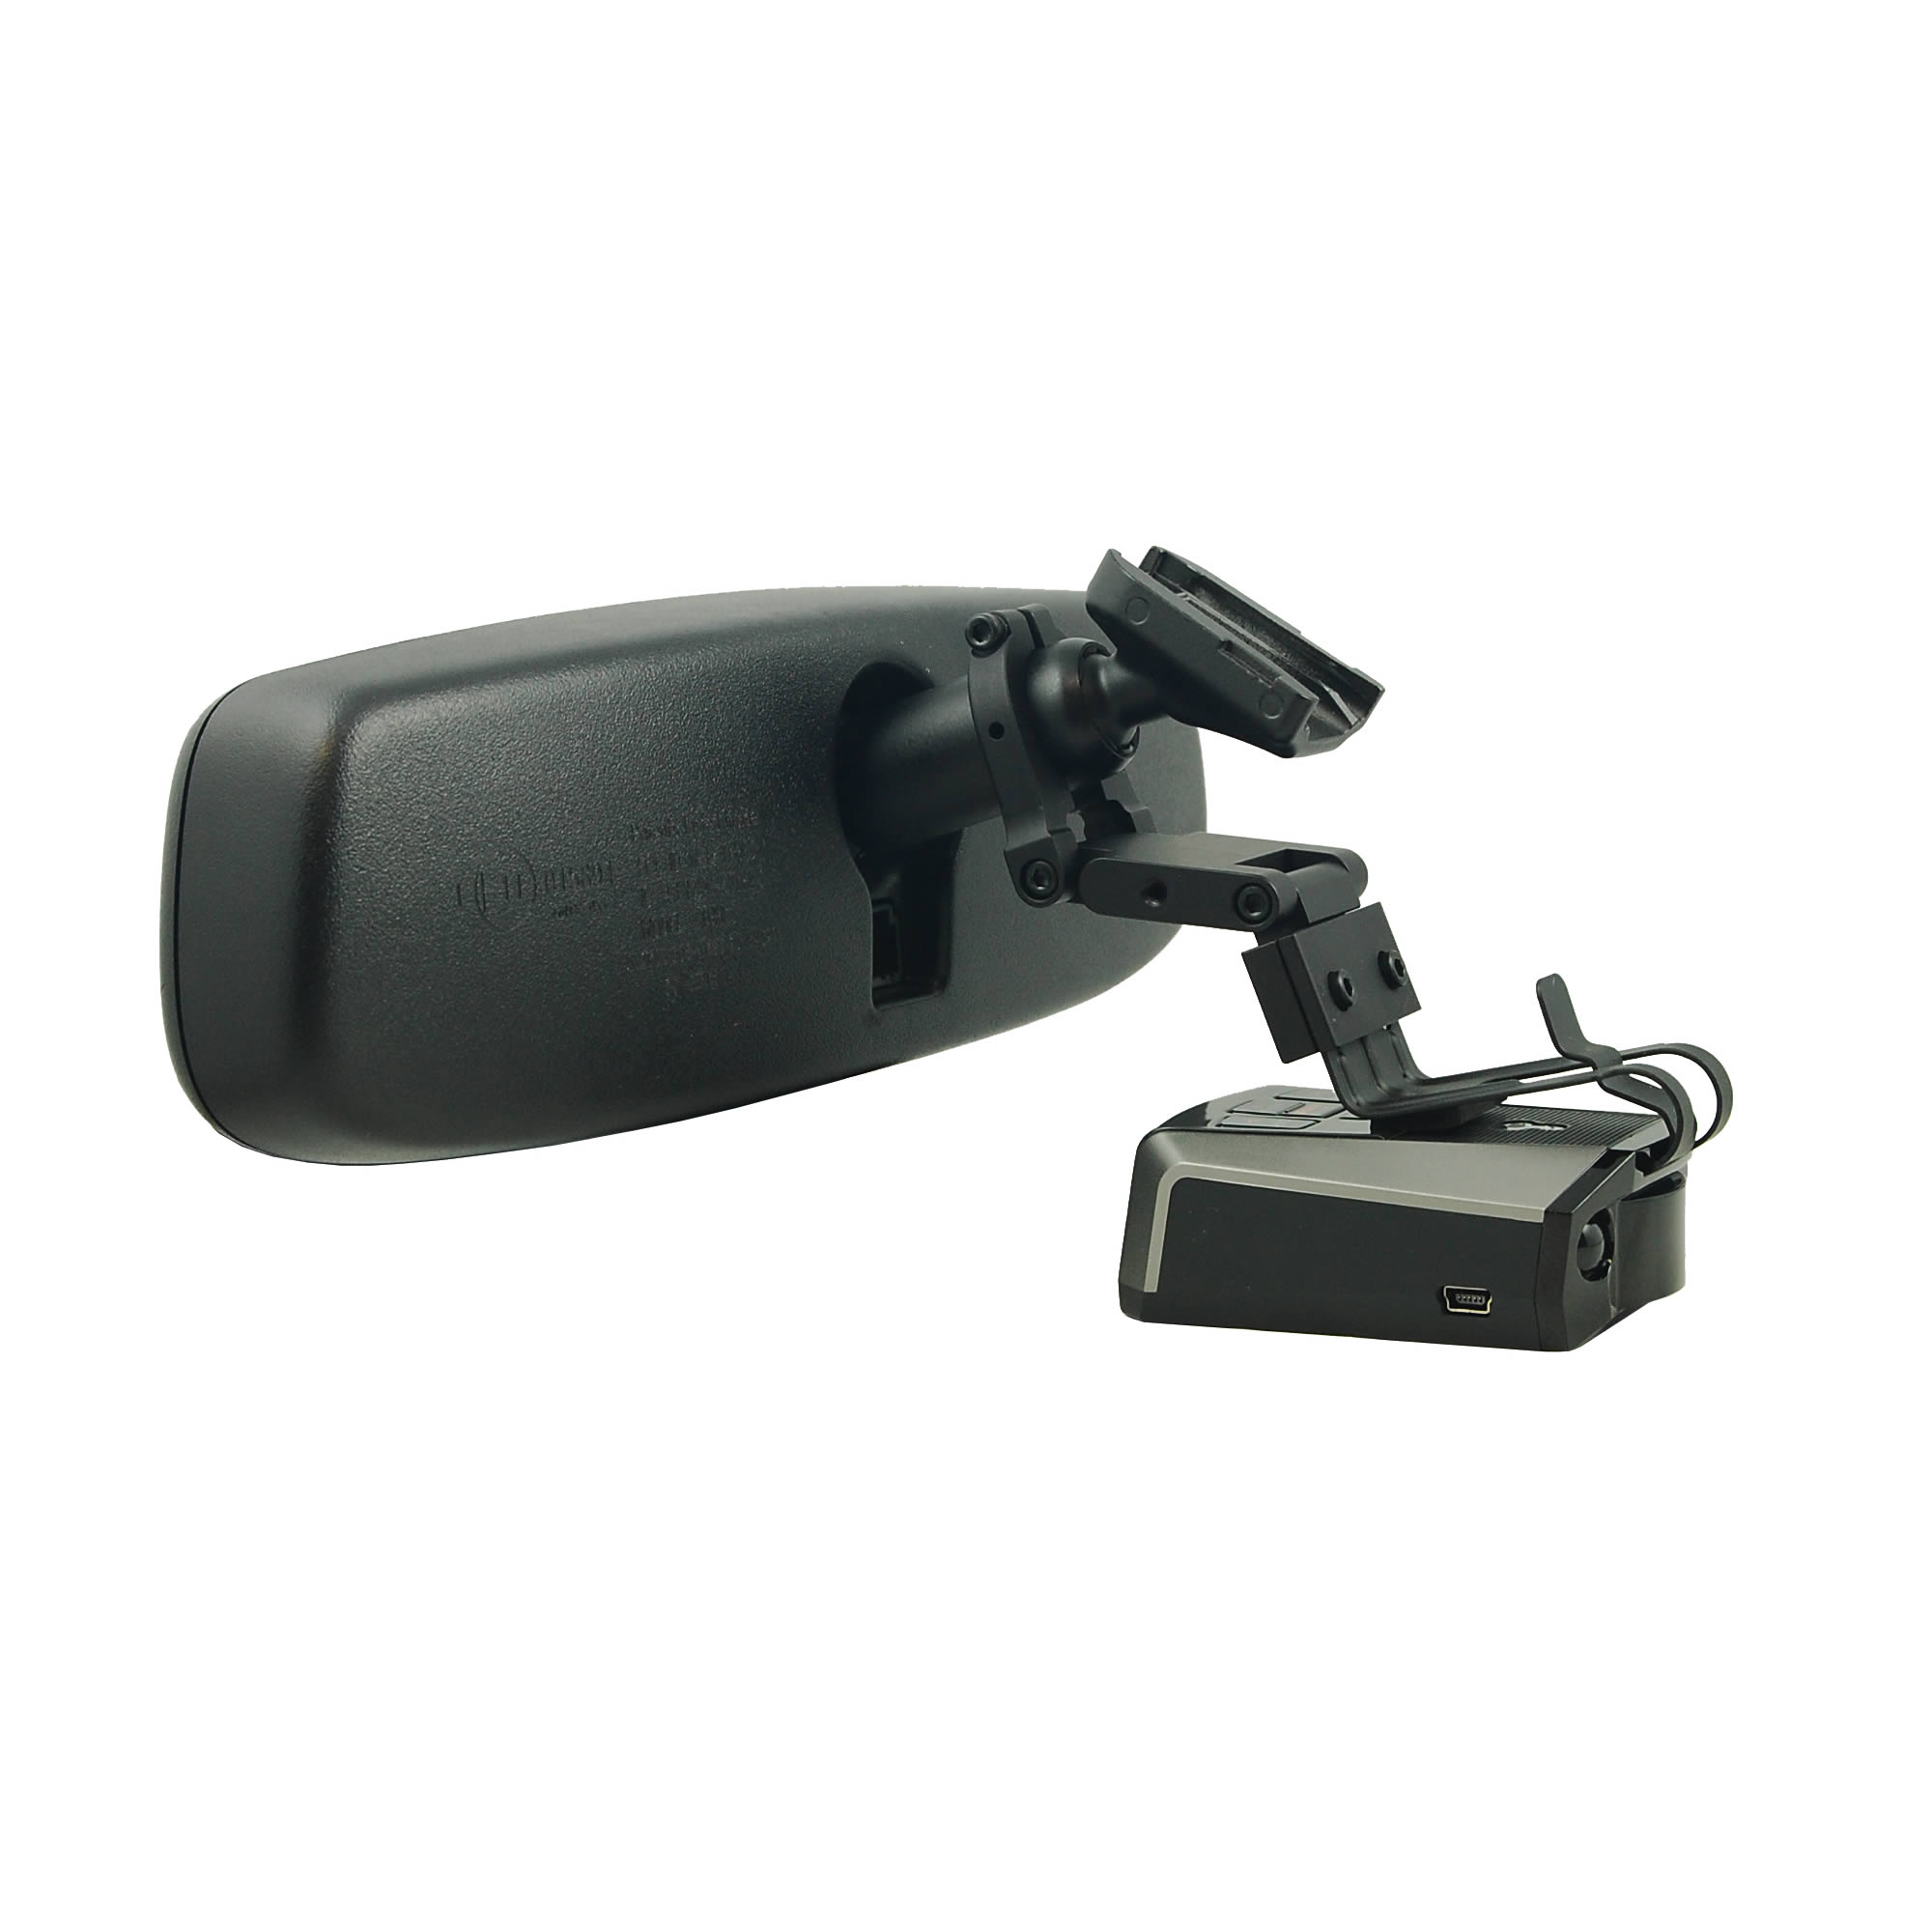 Buy BlendMount BCB-2000R Radar Detector Mount for Cobra DSP 9200BT, RAD Series, SPX, iRAD Series, Compatible with Most... by BlendMount